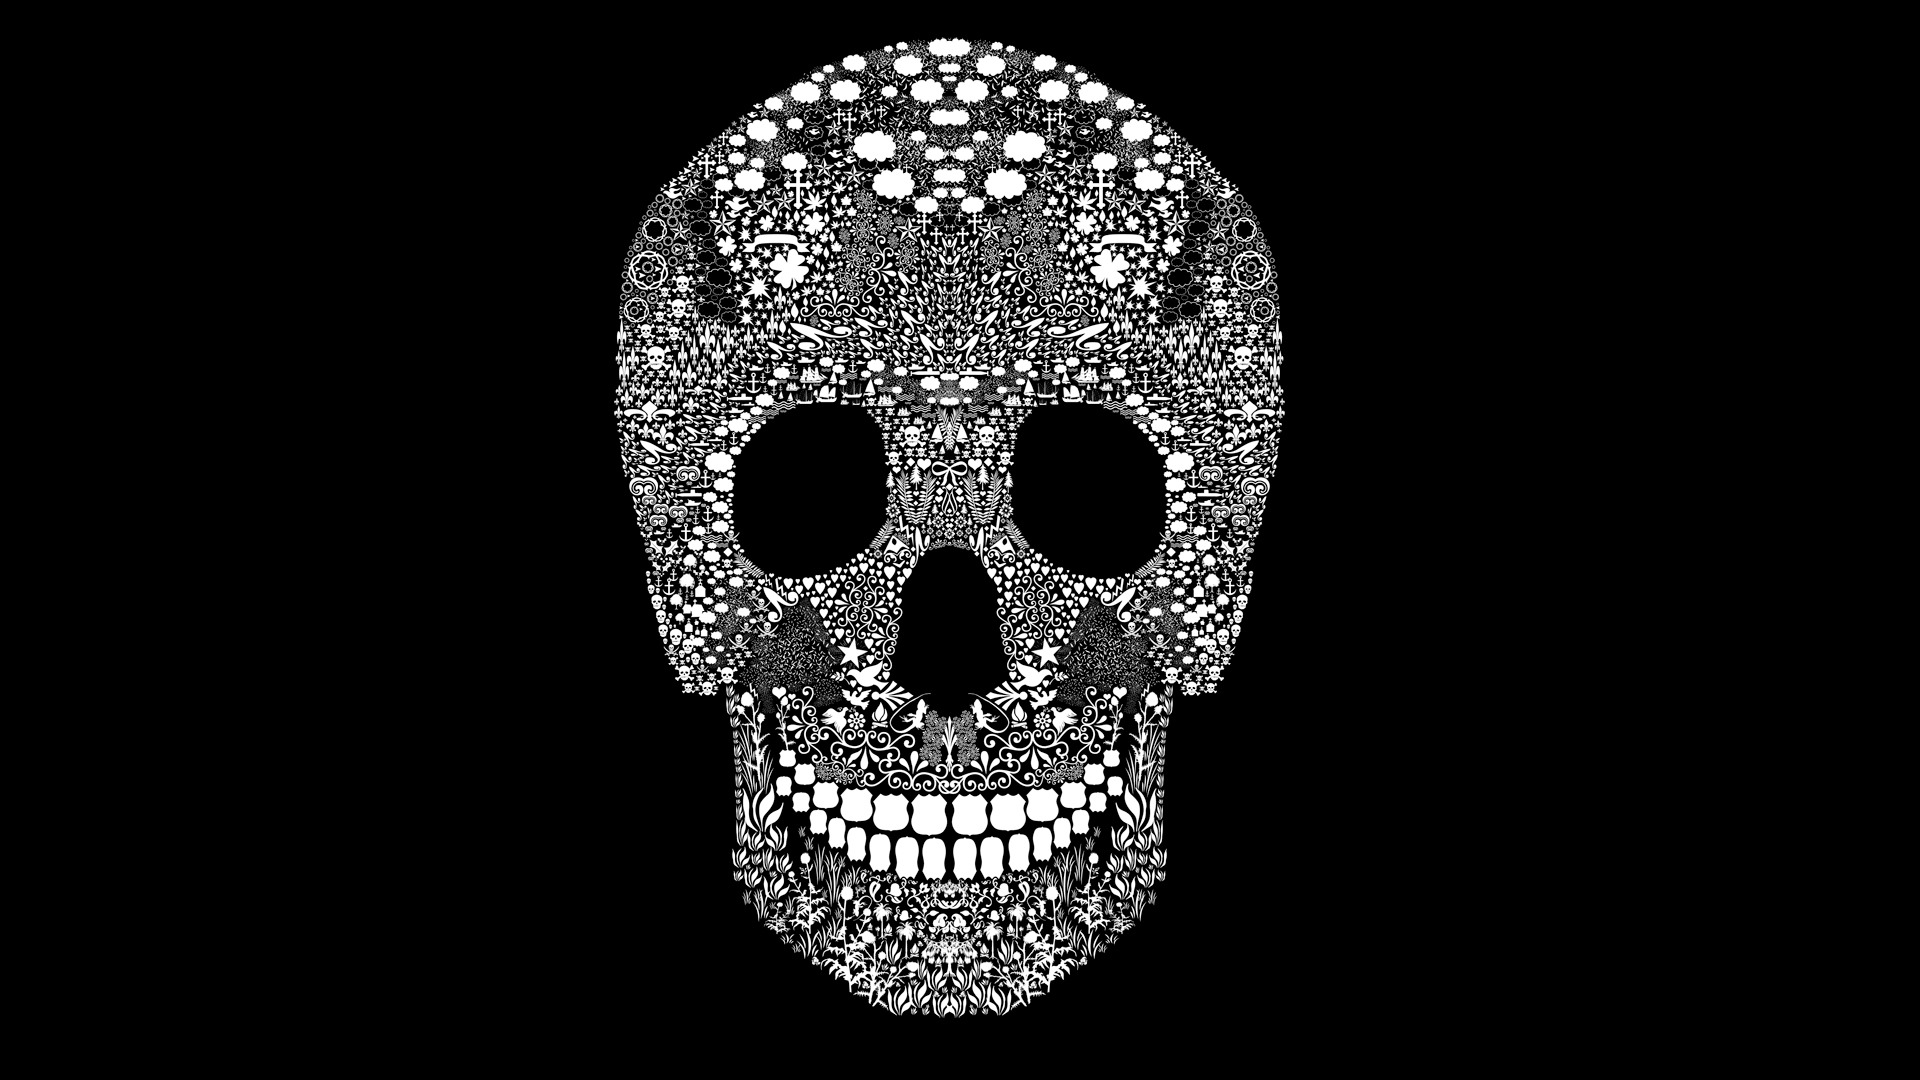 Sugar Skull Wallpaper Sugar skull hd 1920x1080